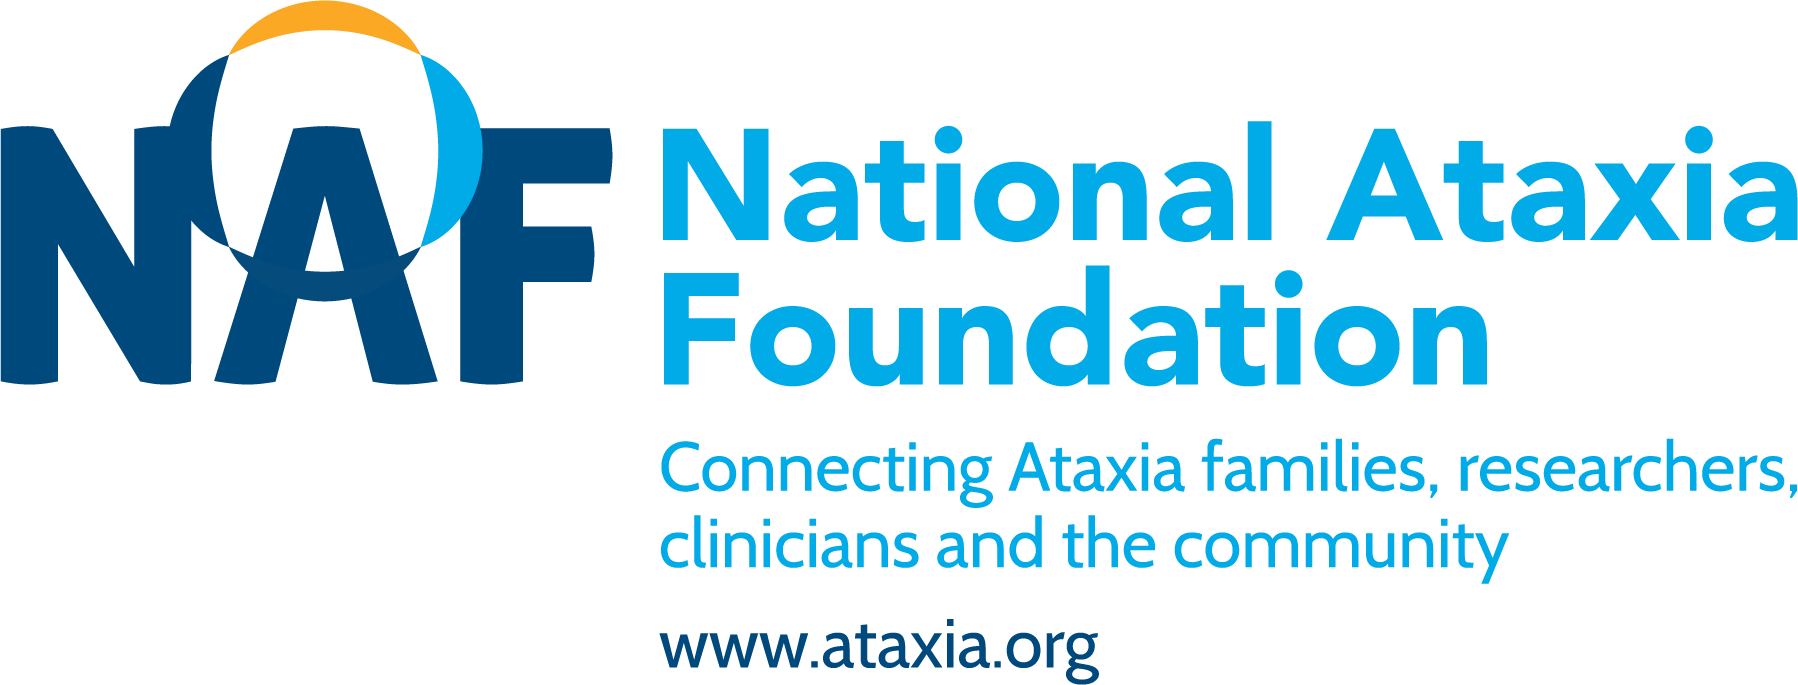 Neurologists and Specialty Clinics - National Ataxia Foundation